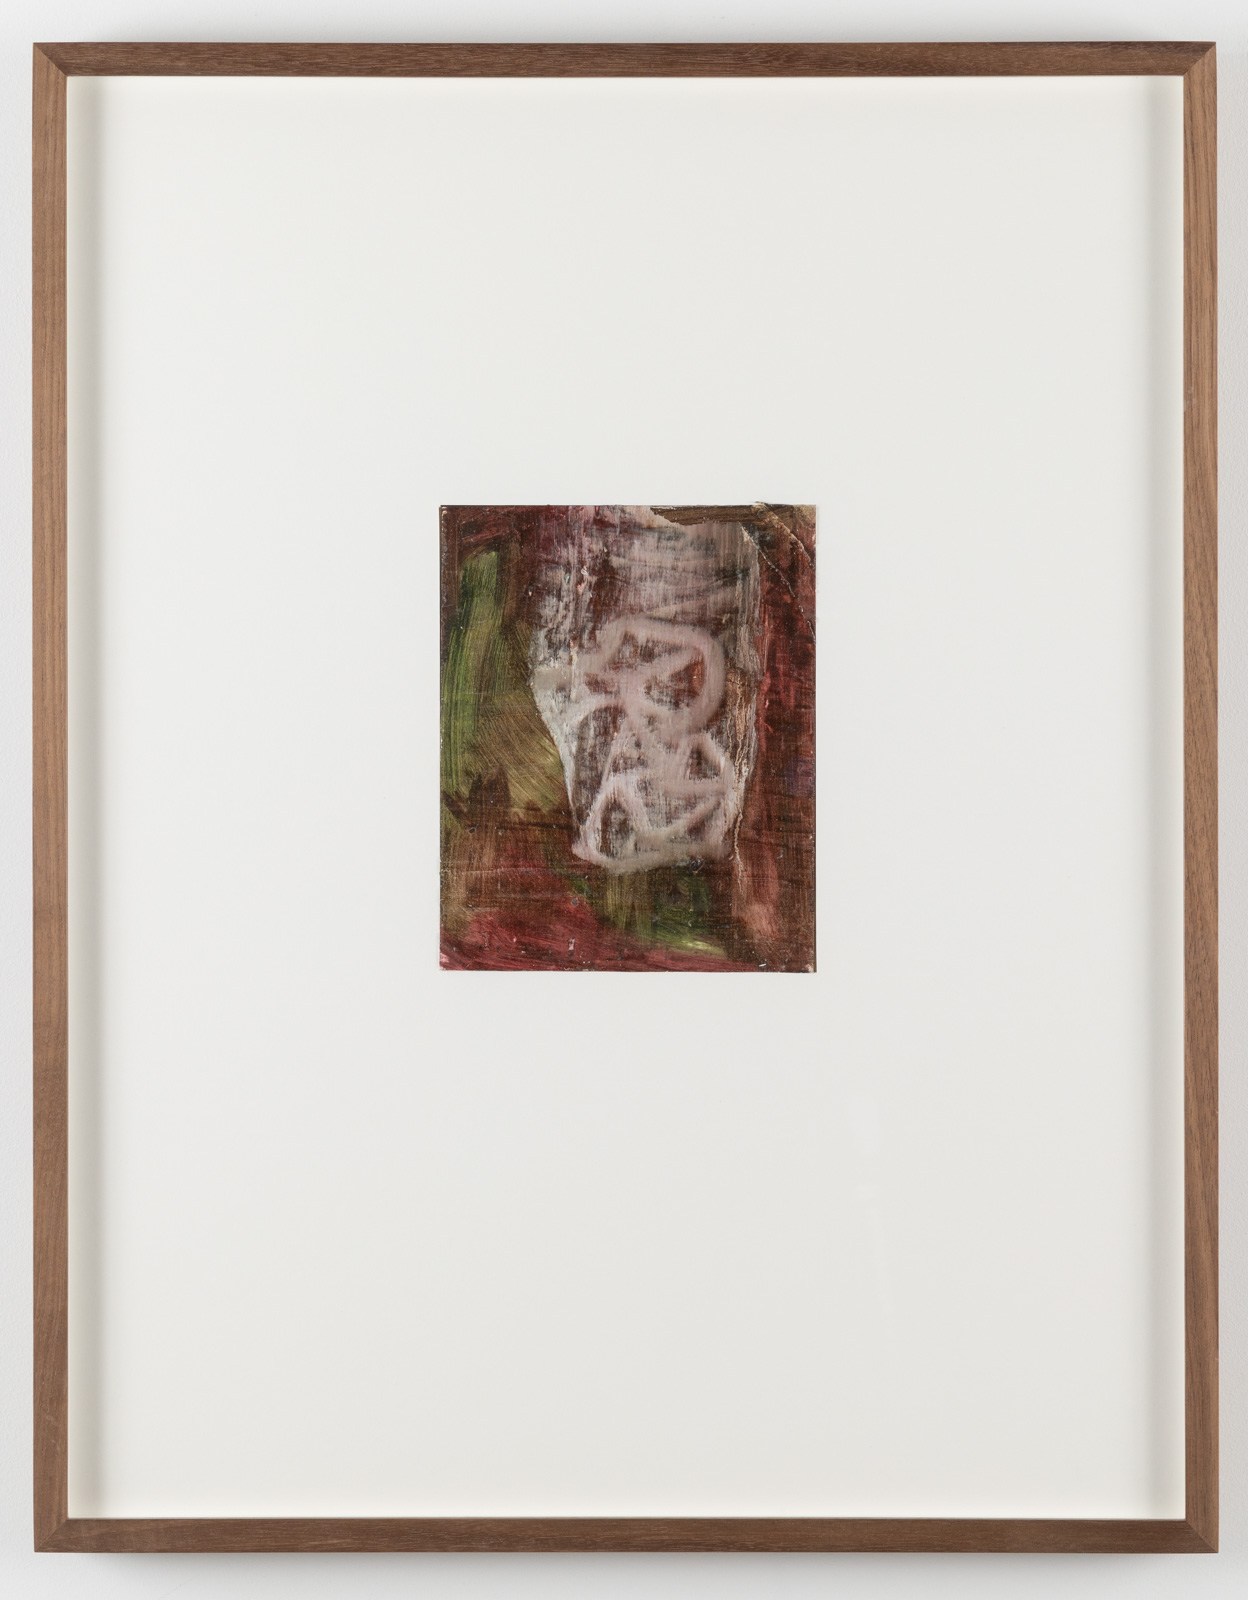 The Very Small Rubicon Paintings No. 04, 2019. Oil on panel in artist's frame, 17,5 x 13,5 cm, overall 65 x 51 x 4 cm